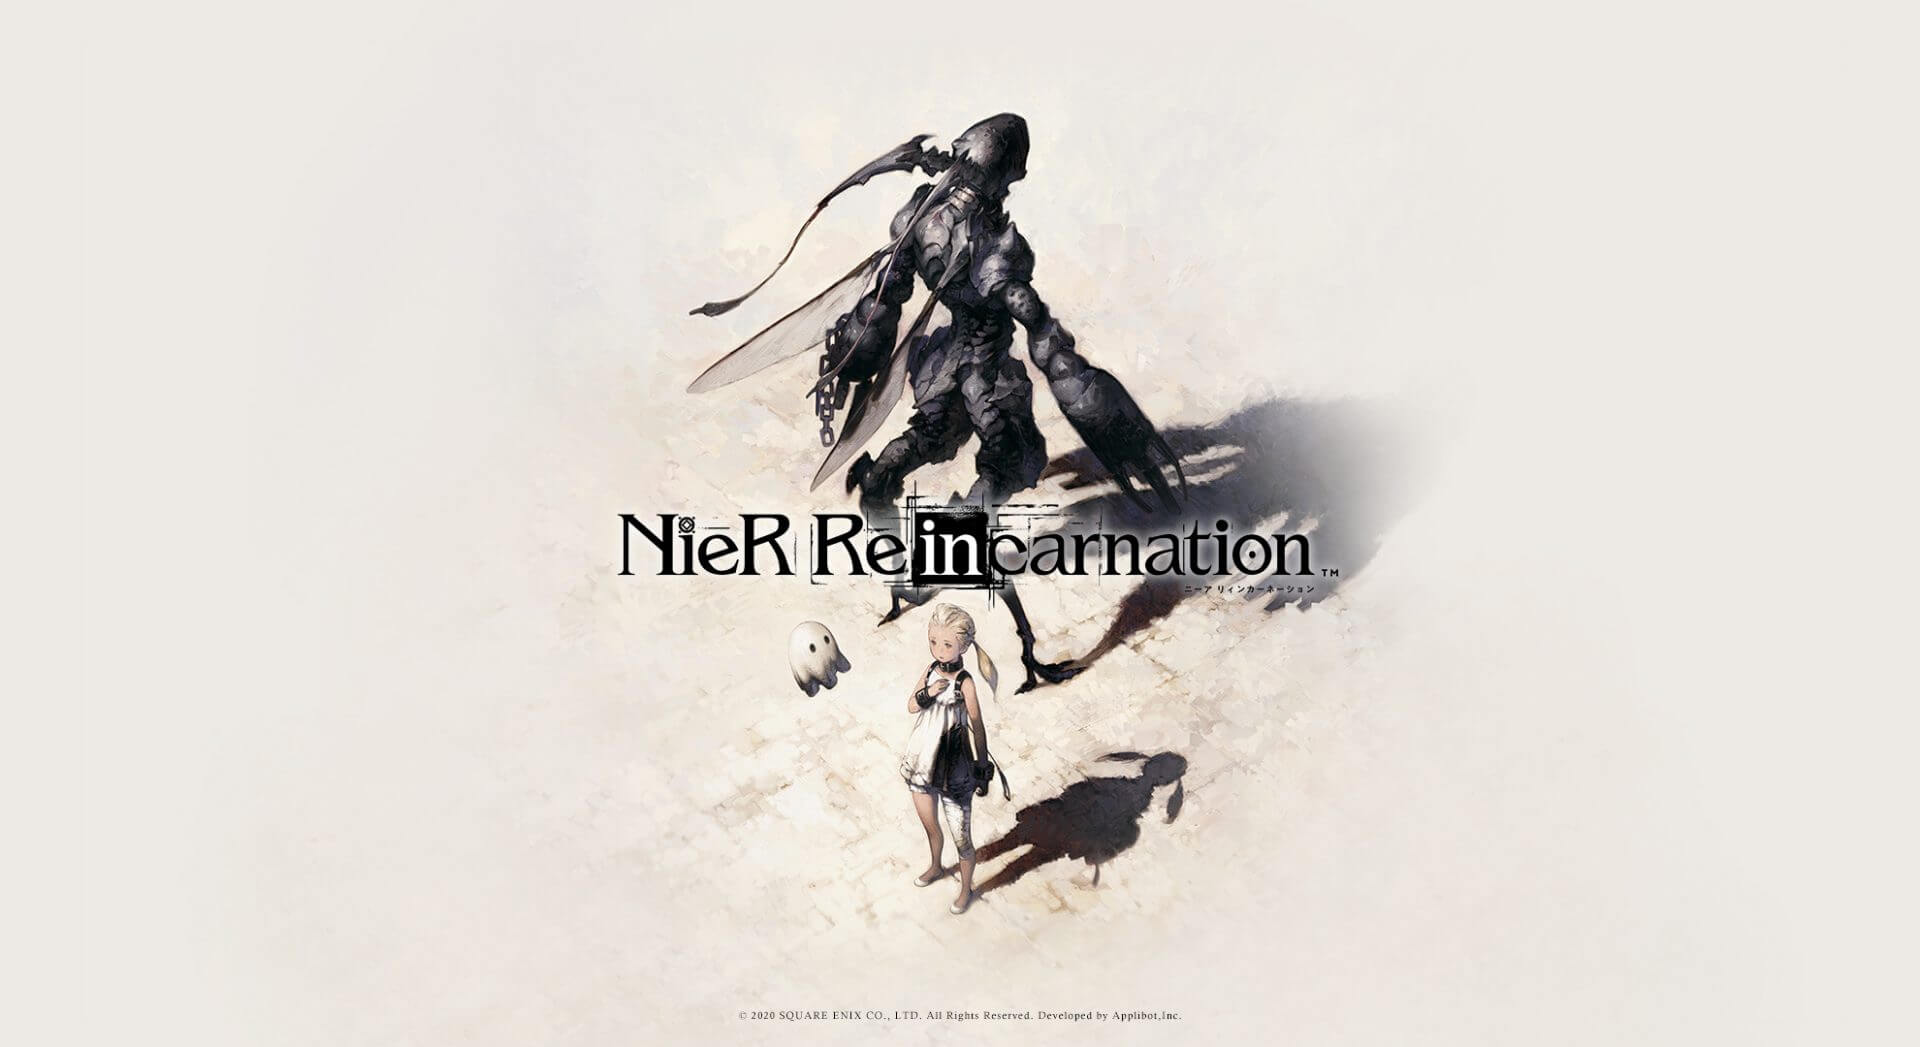 NieR Reincarnation Mobile Game Delayed to 2021